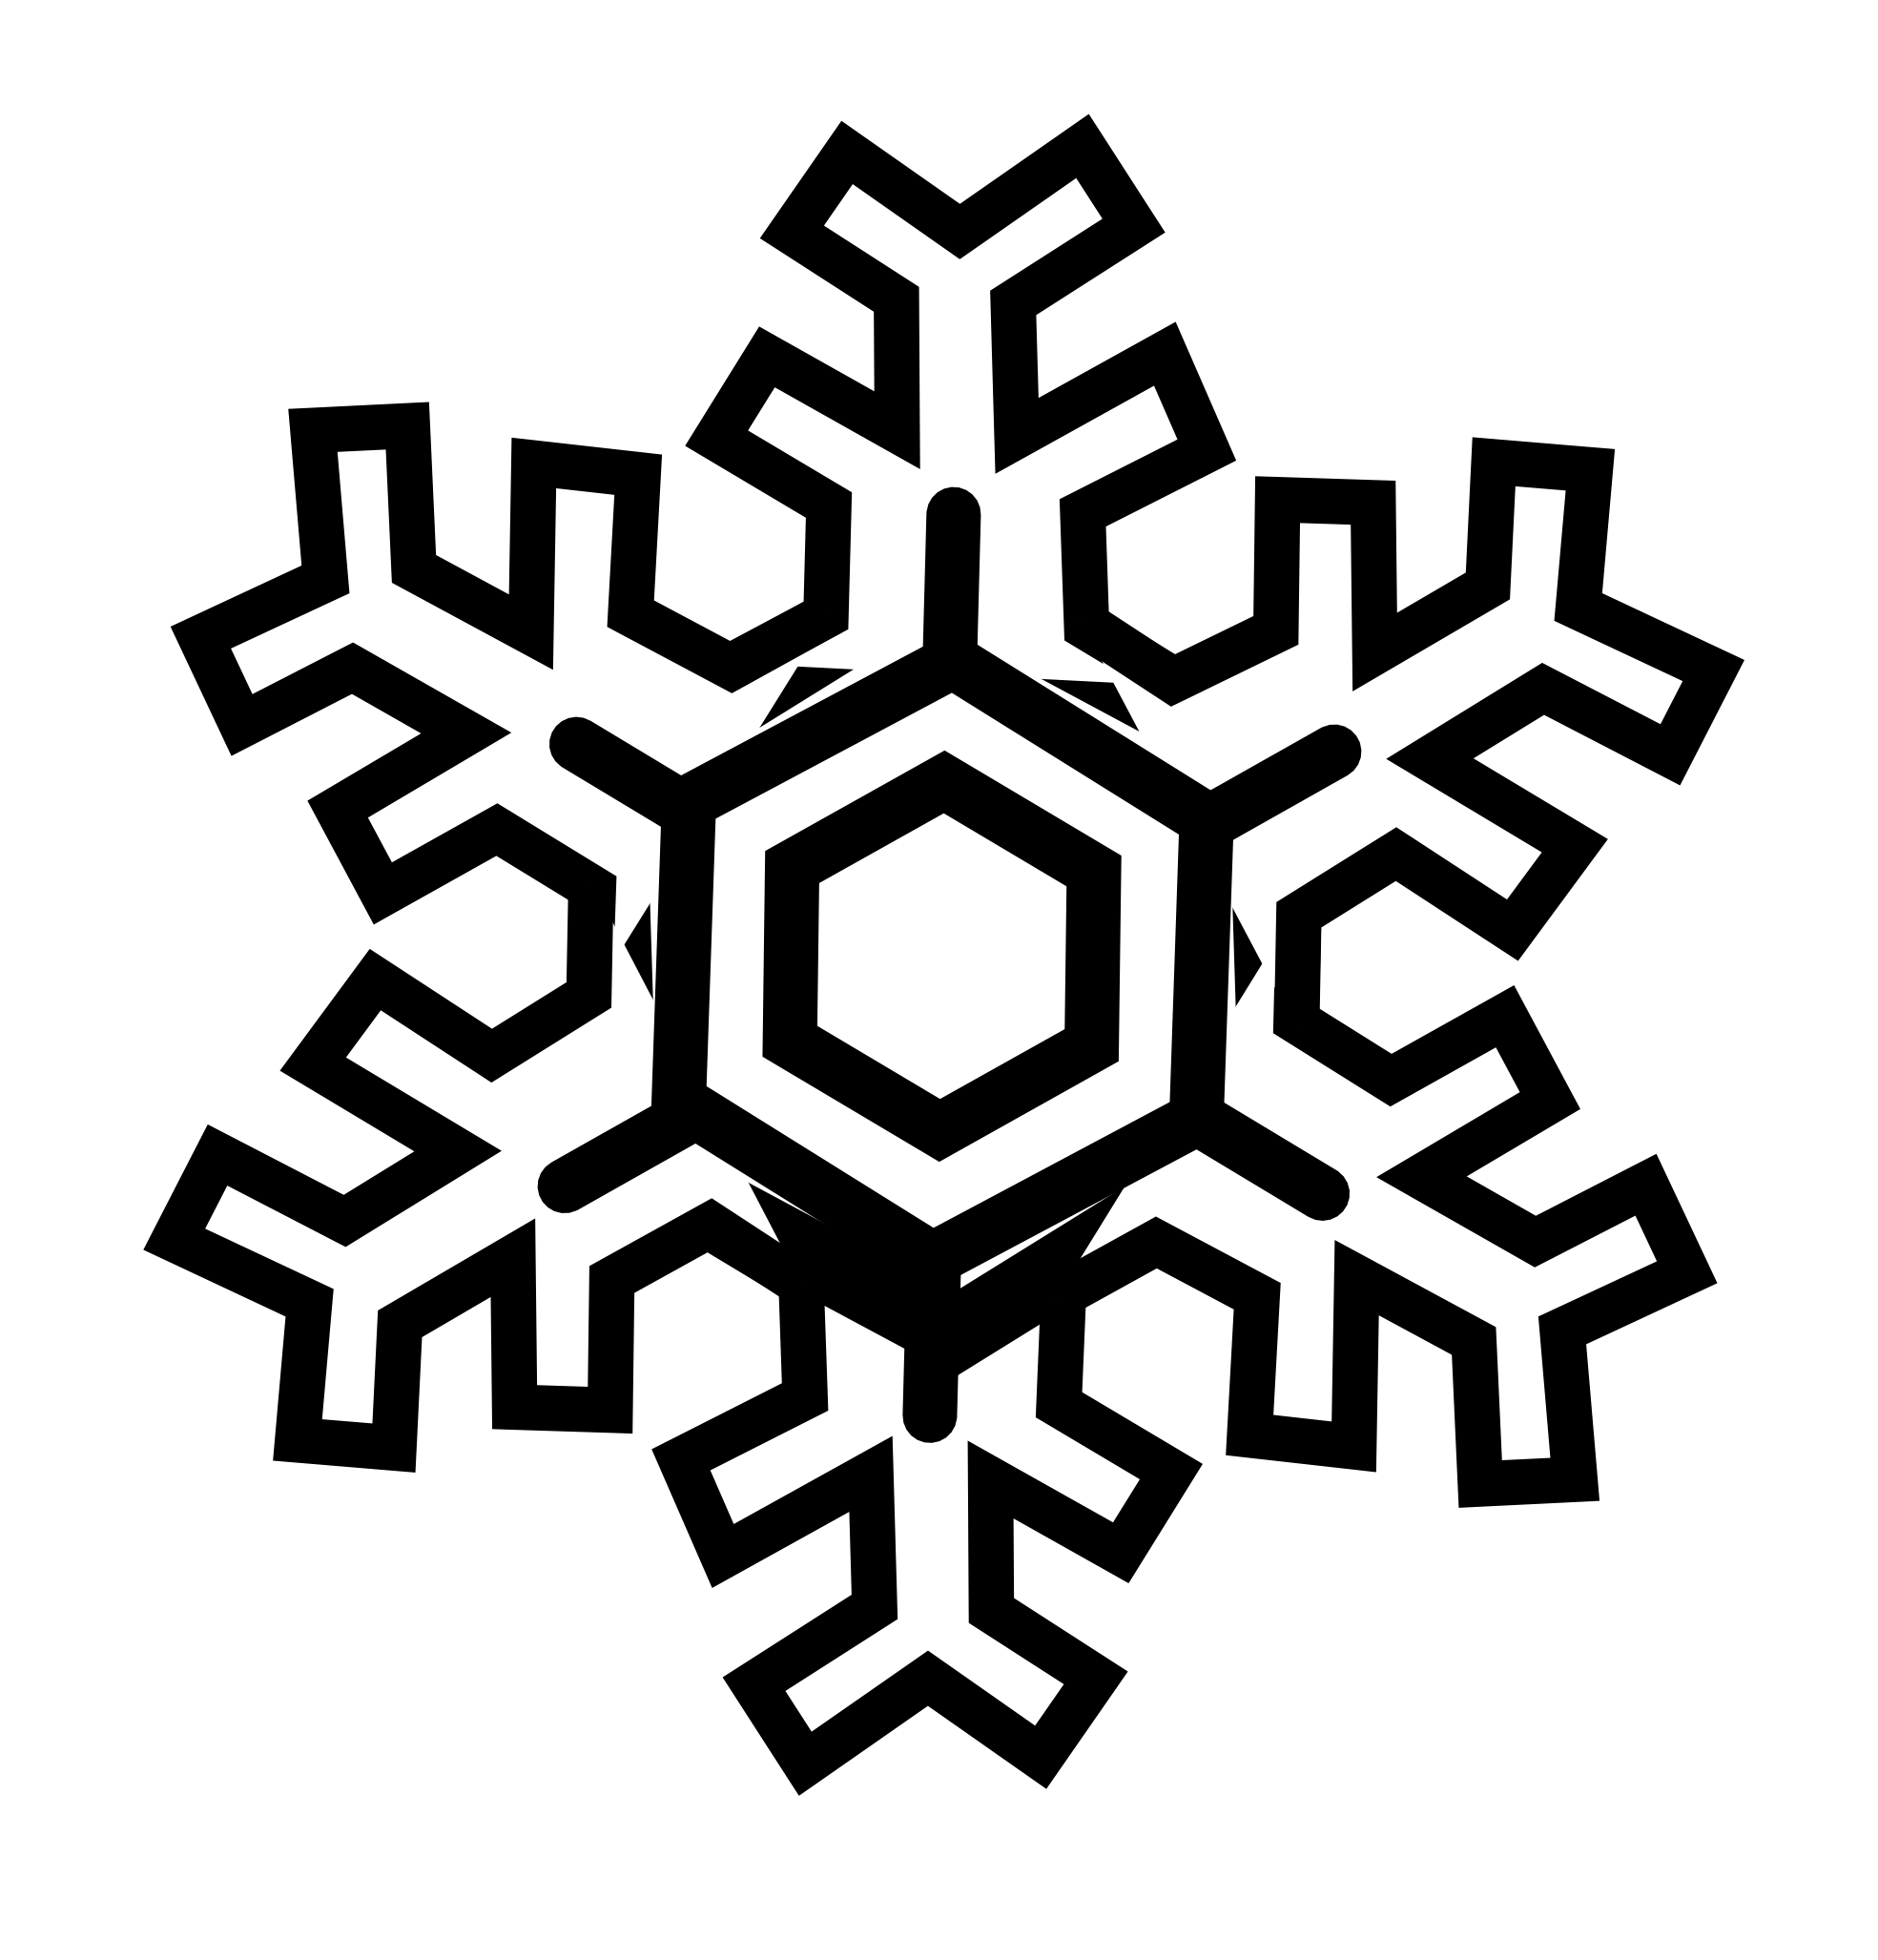 1969x2055 Black And White Snowflake Clip Art Background 1 Hd Wallpapers